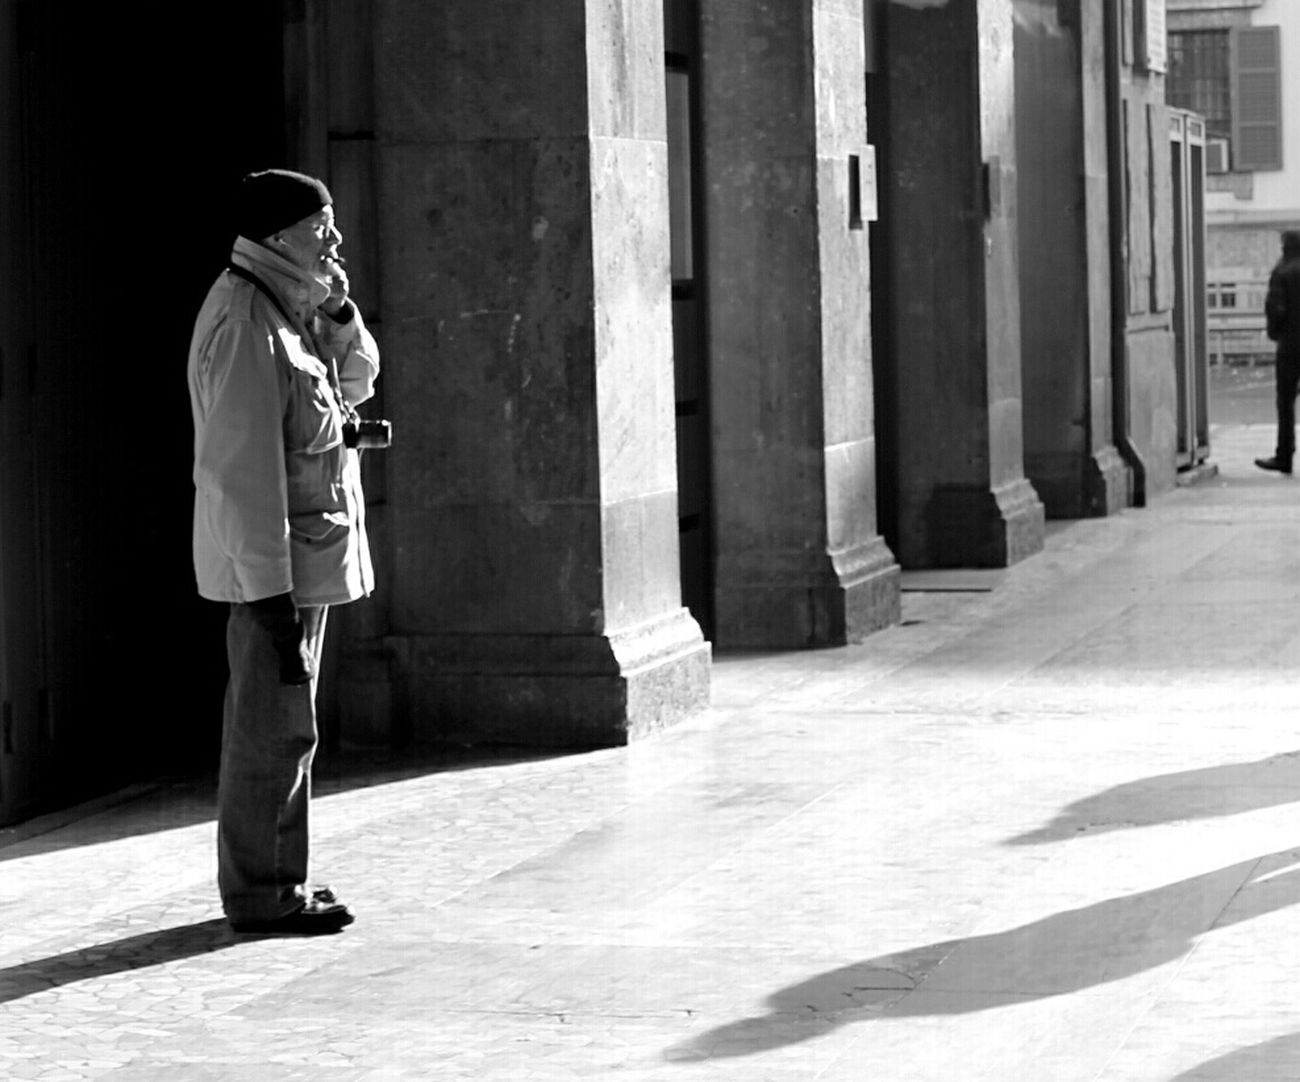 Streetphotography Blackandwhite Street Life Streetphoto_bw Italianbrother